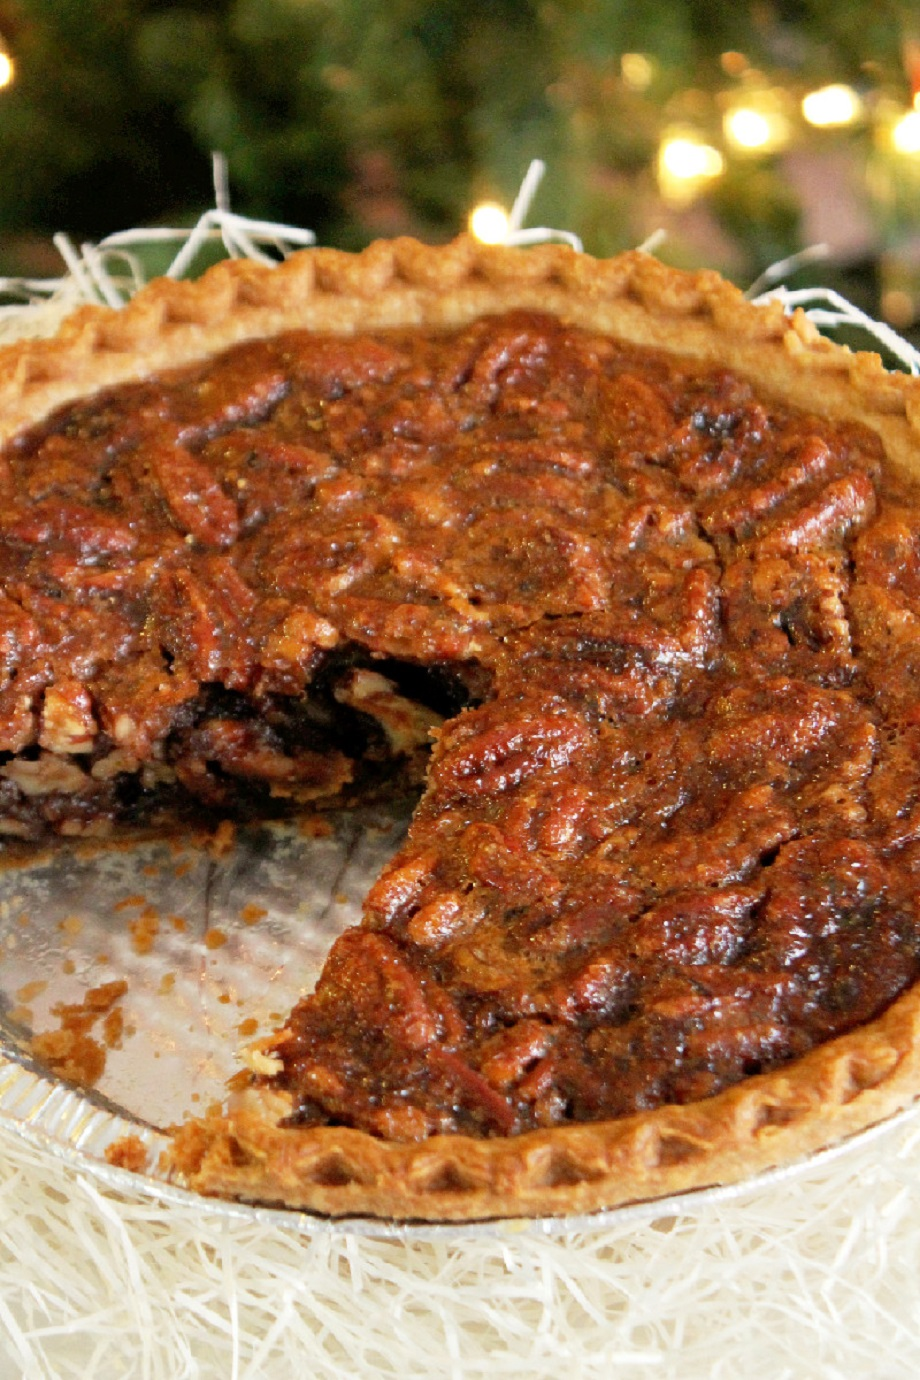 ... big piece of Pecan Pie with a large glass of ice cold organic milk